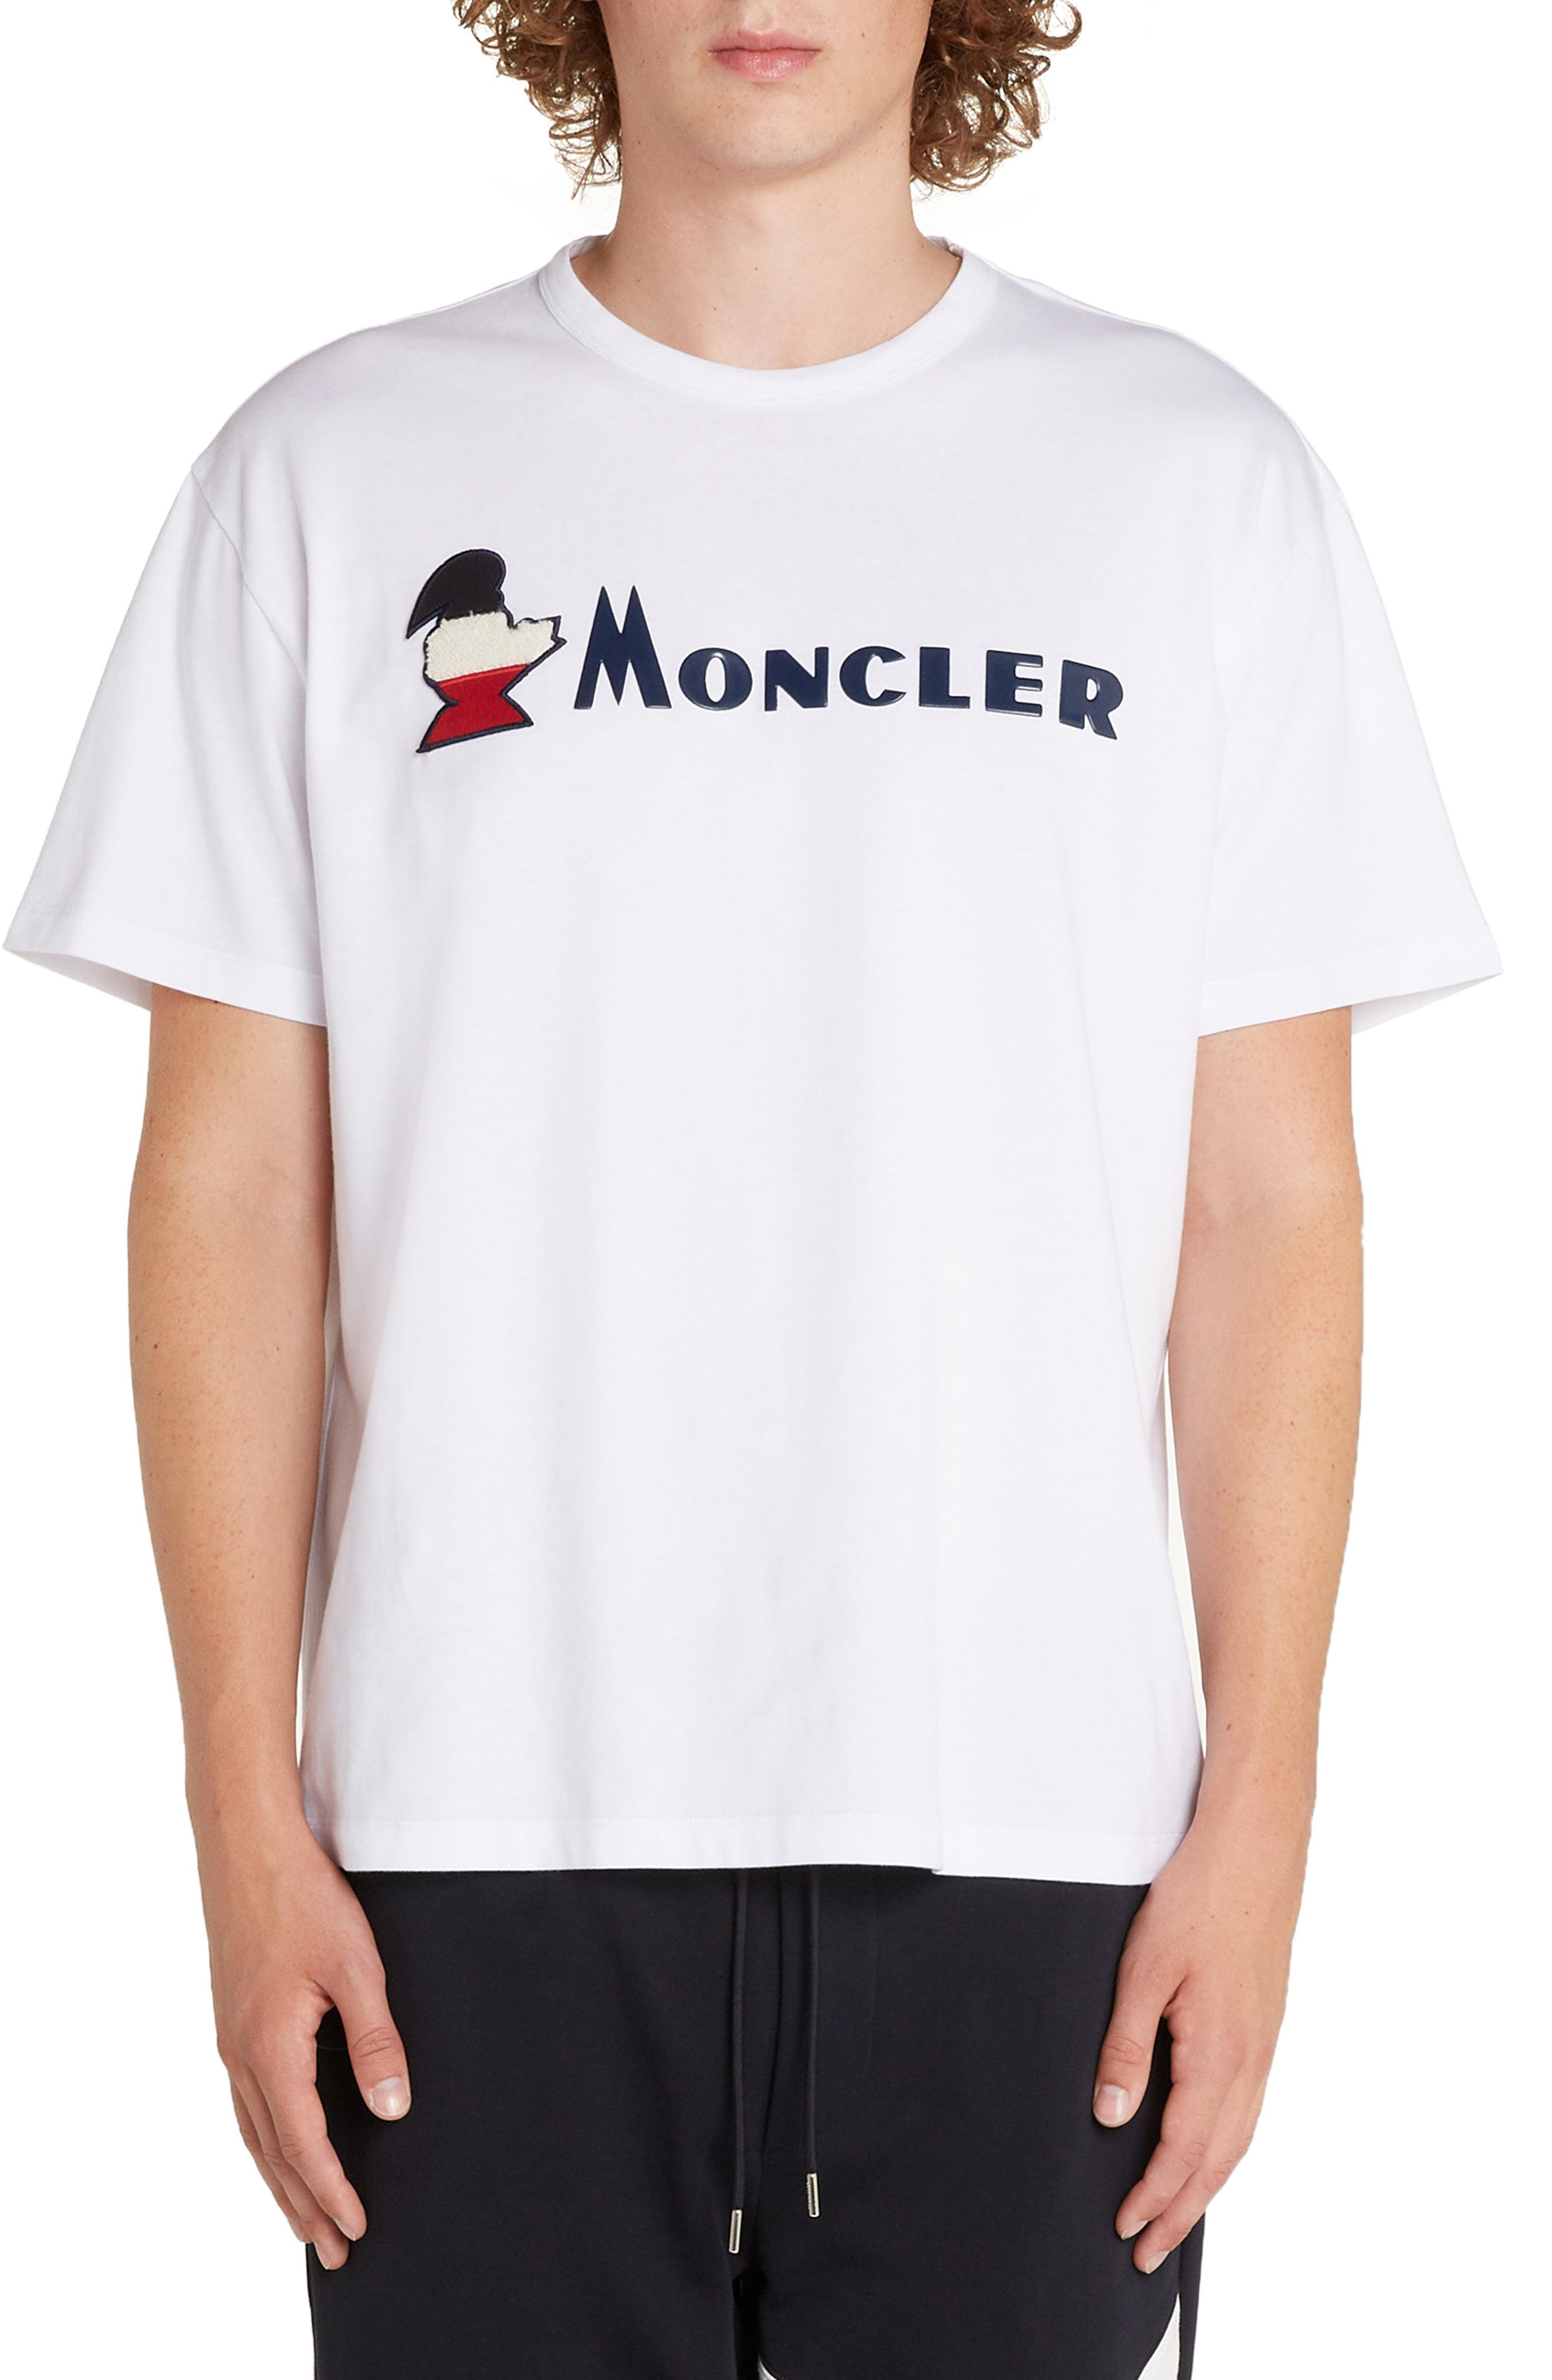 c2500f45f Men's Moncler T-Shirts, Tank Tops, & Graphic Tees   Nordstrom